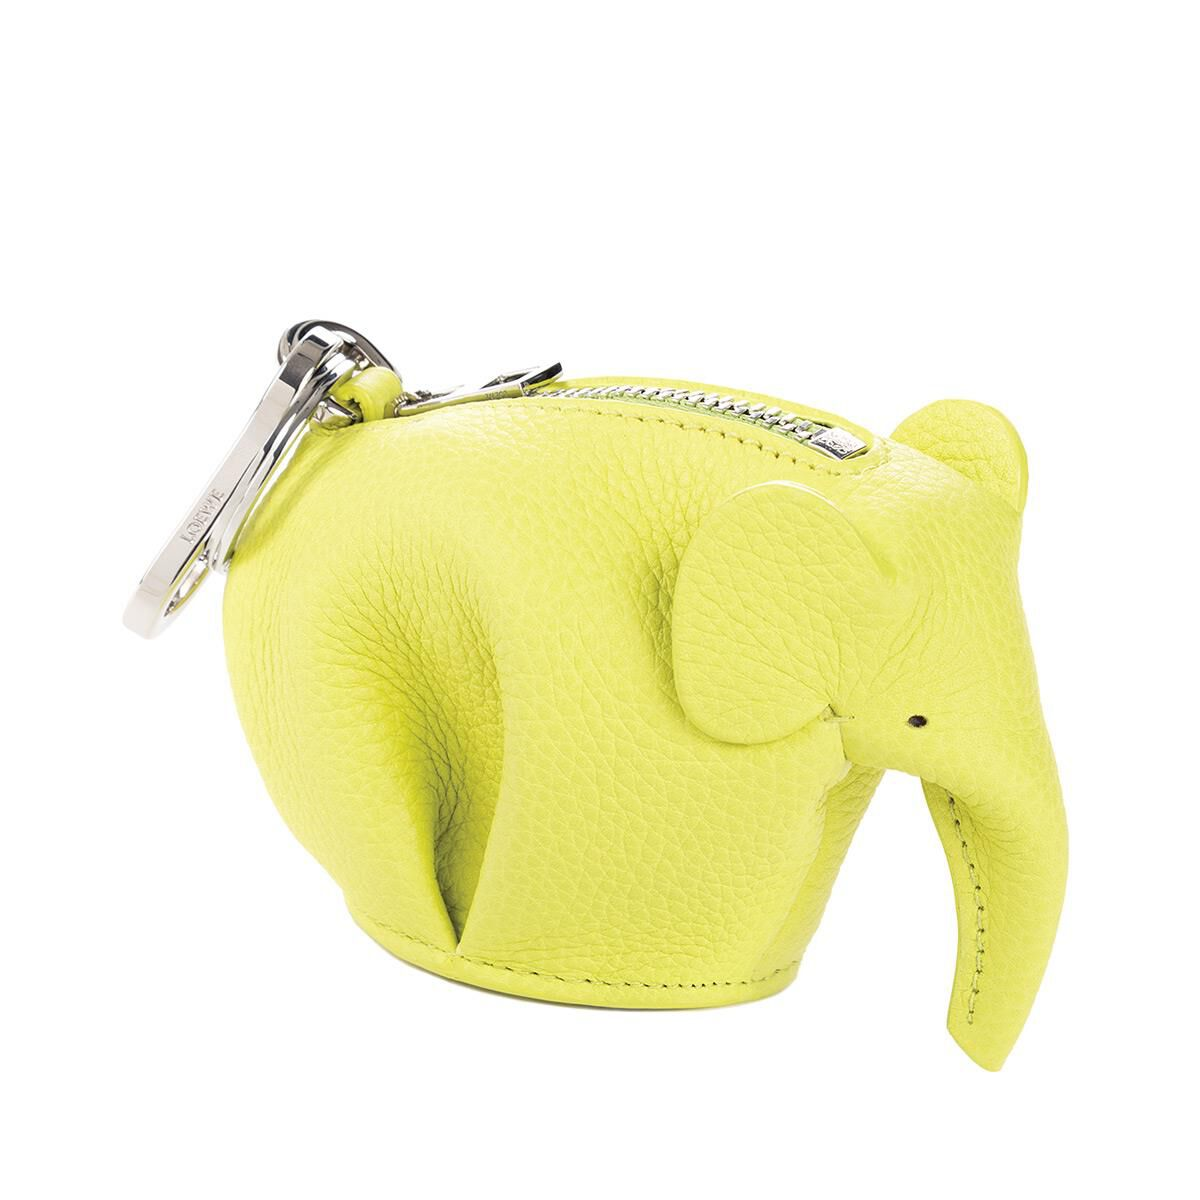 Loewe Mouse Charm Bag Accessory in Yellow Lemon Calfskin